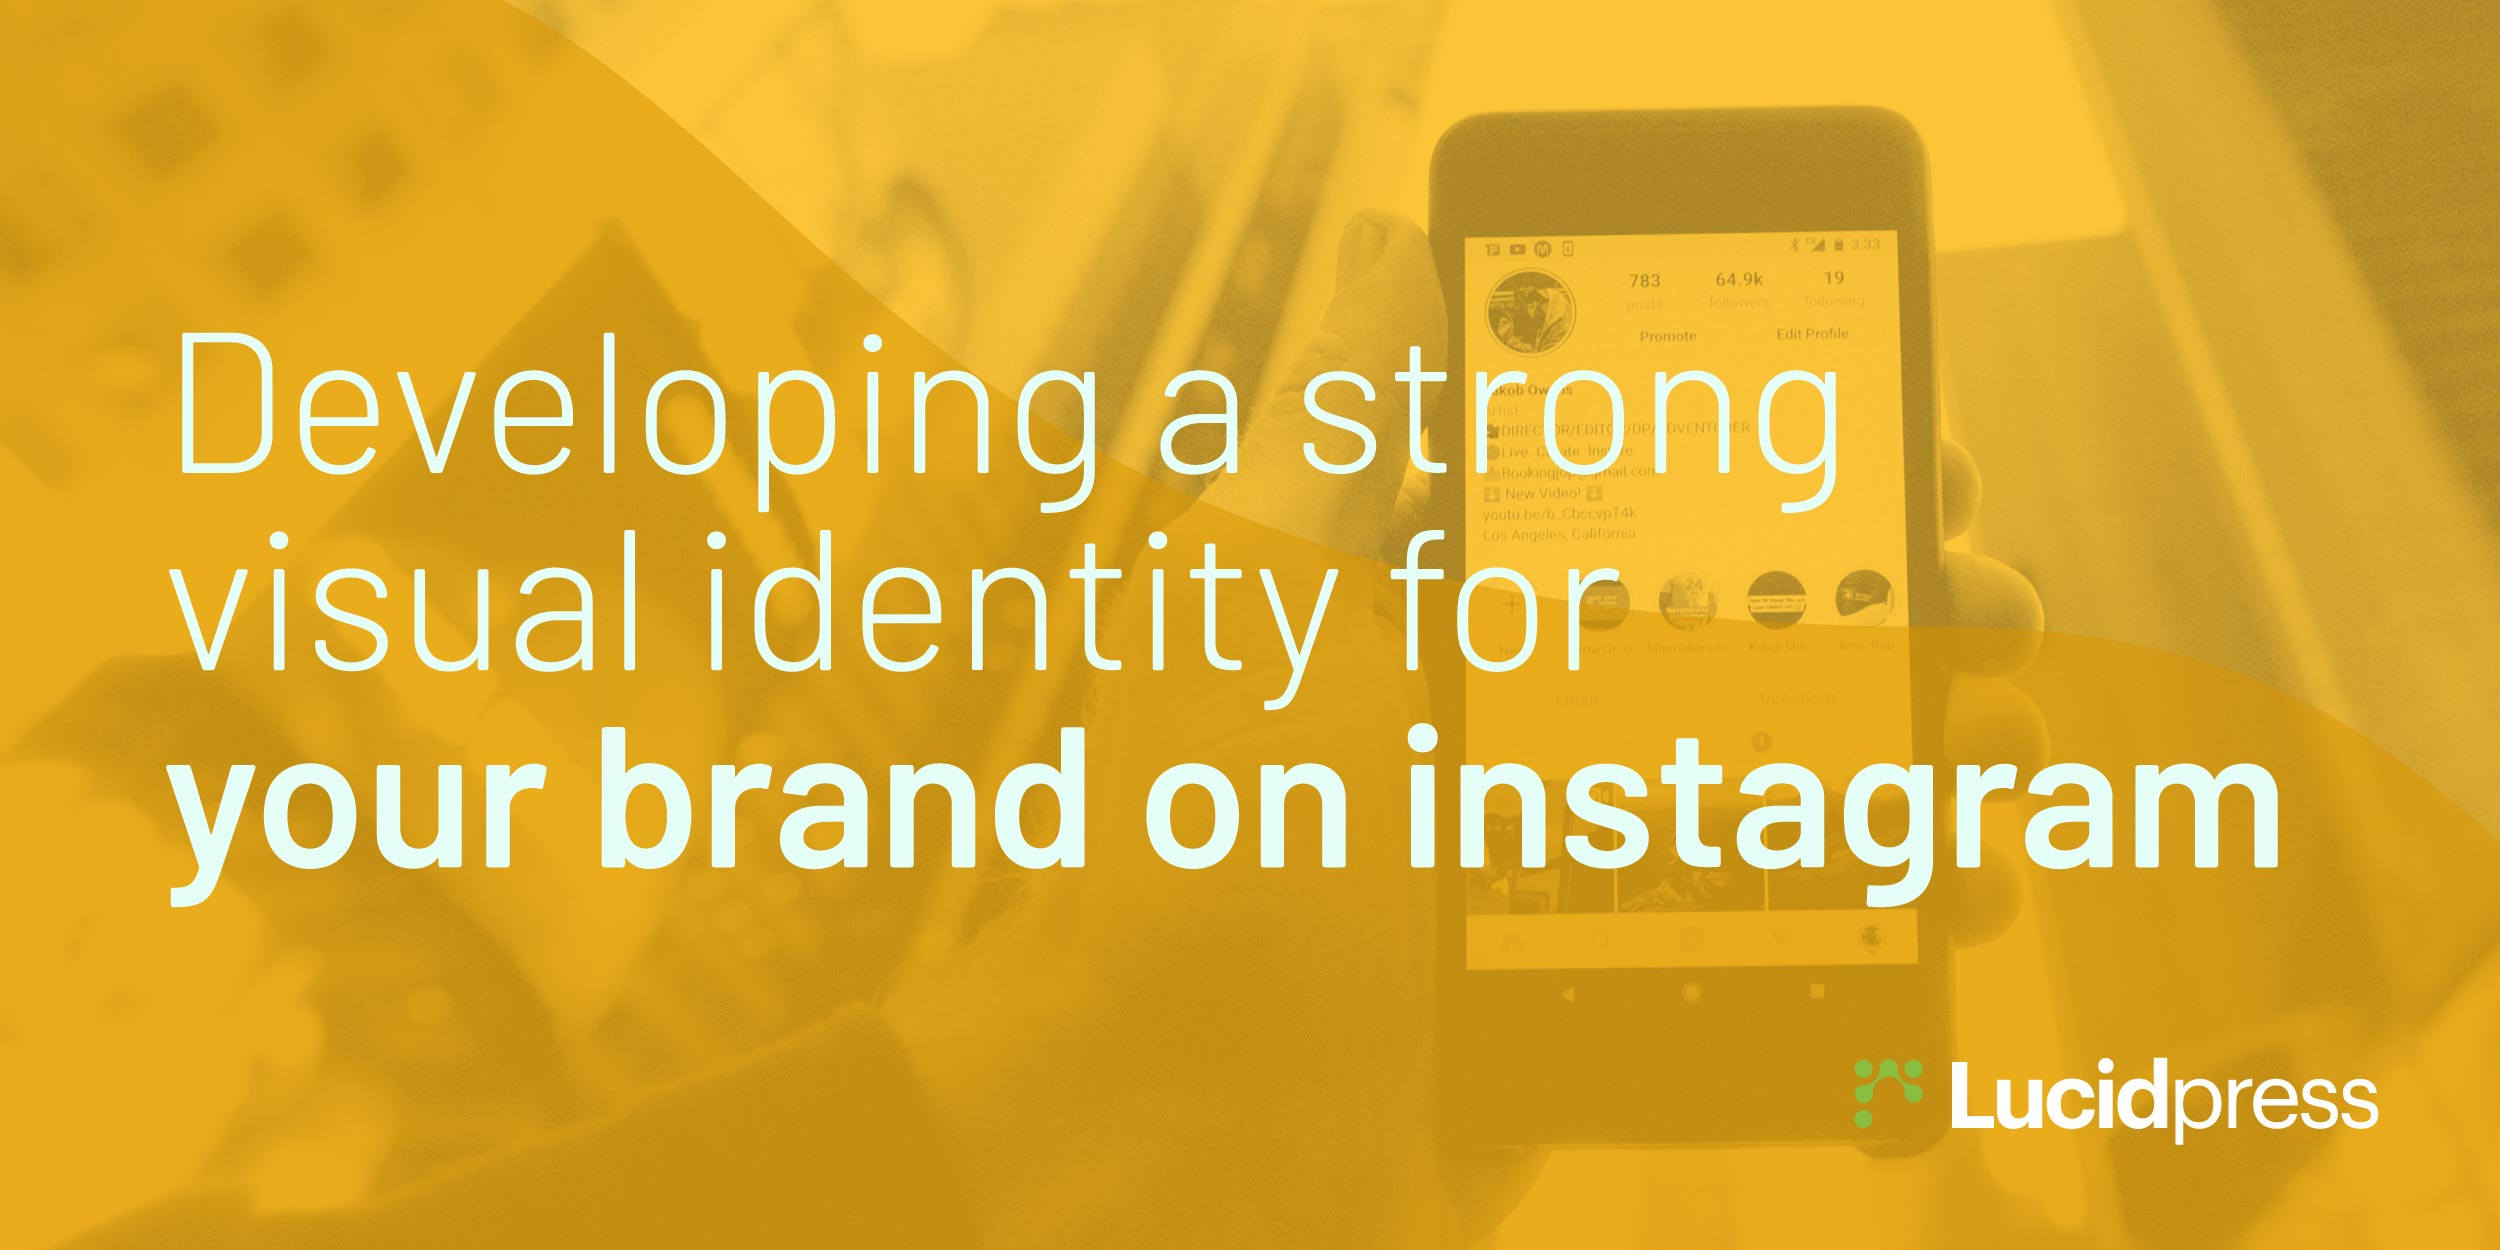 Developing a Strong Visual Identity for Your Brand on Instagram